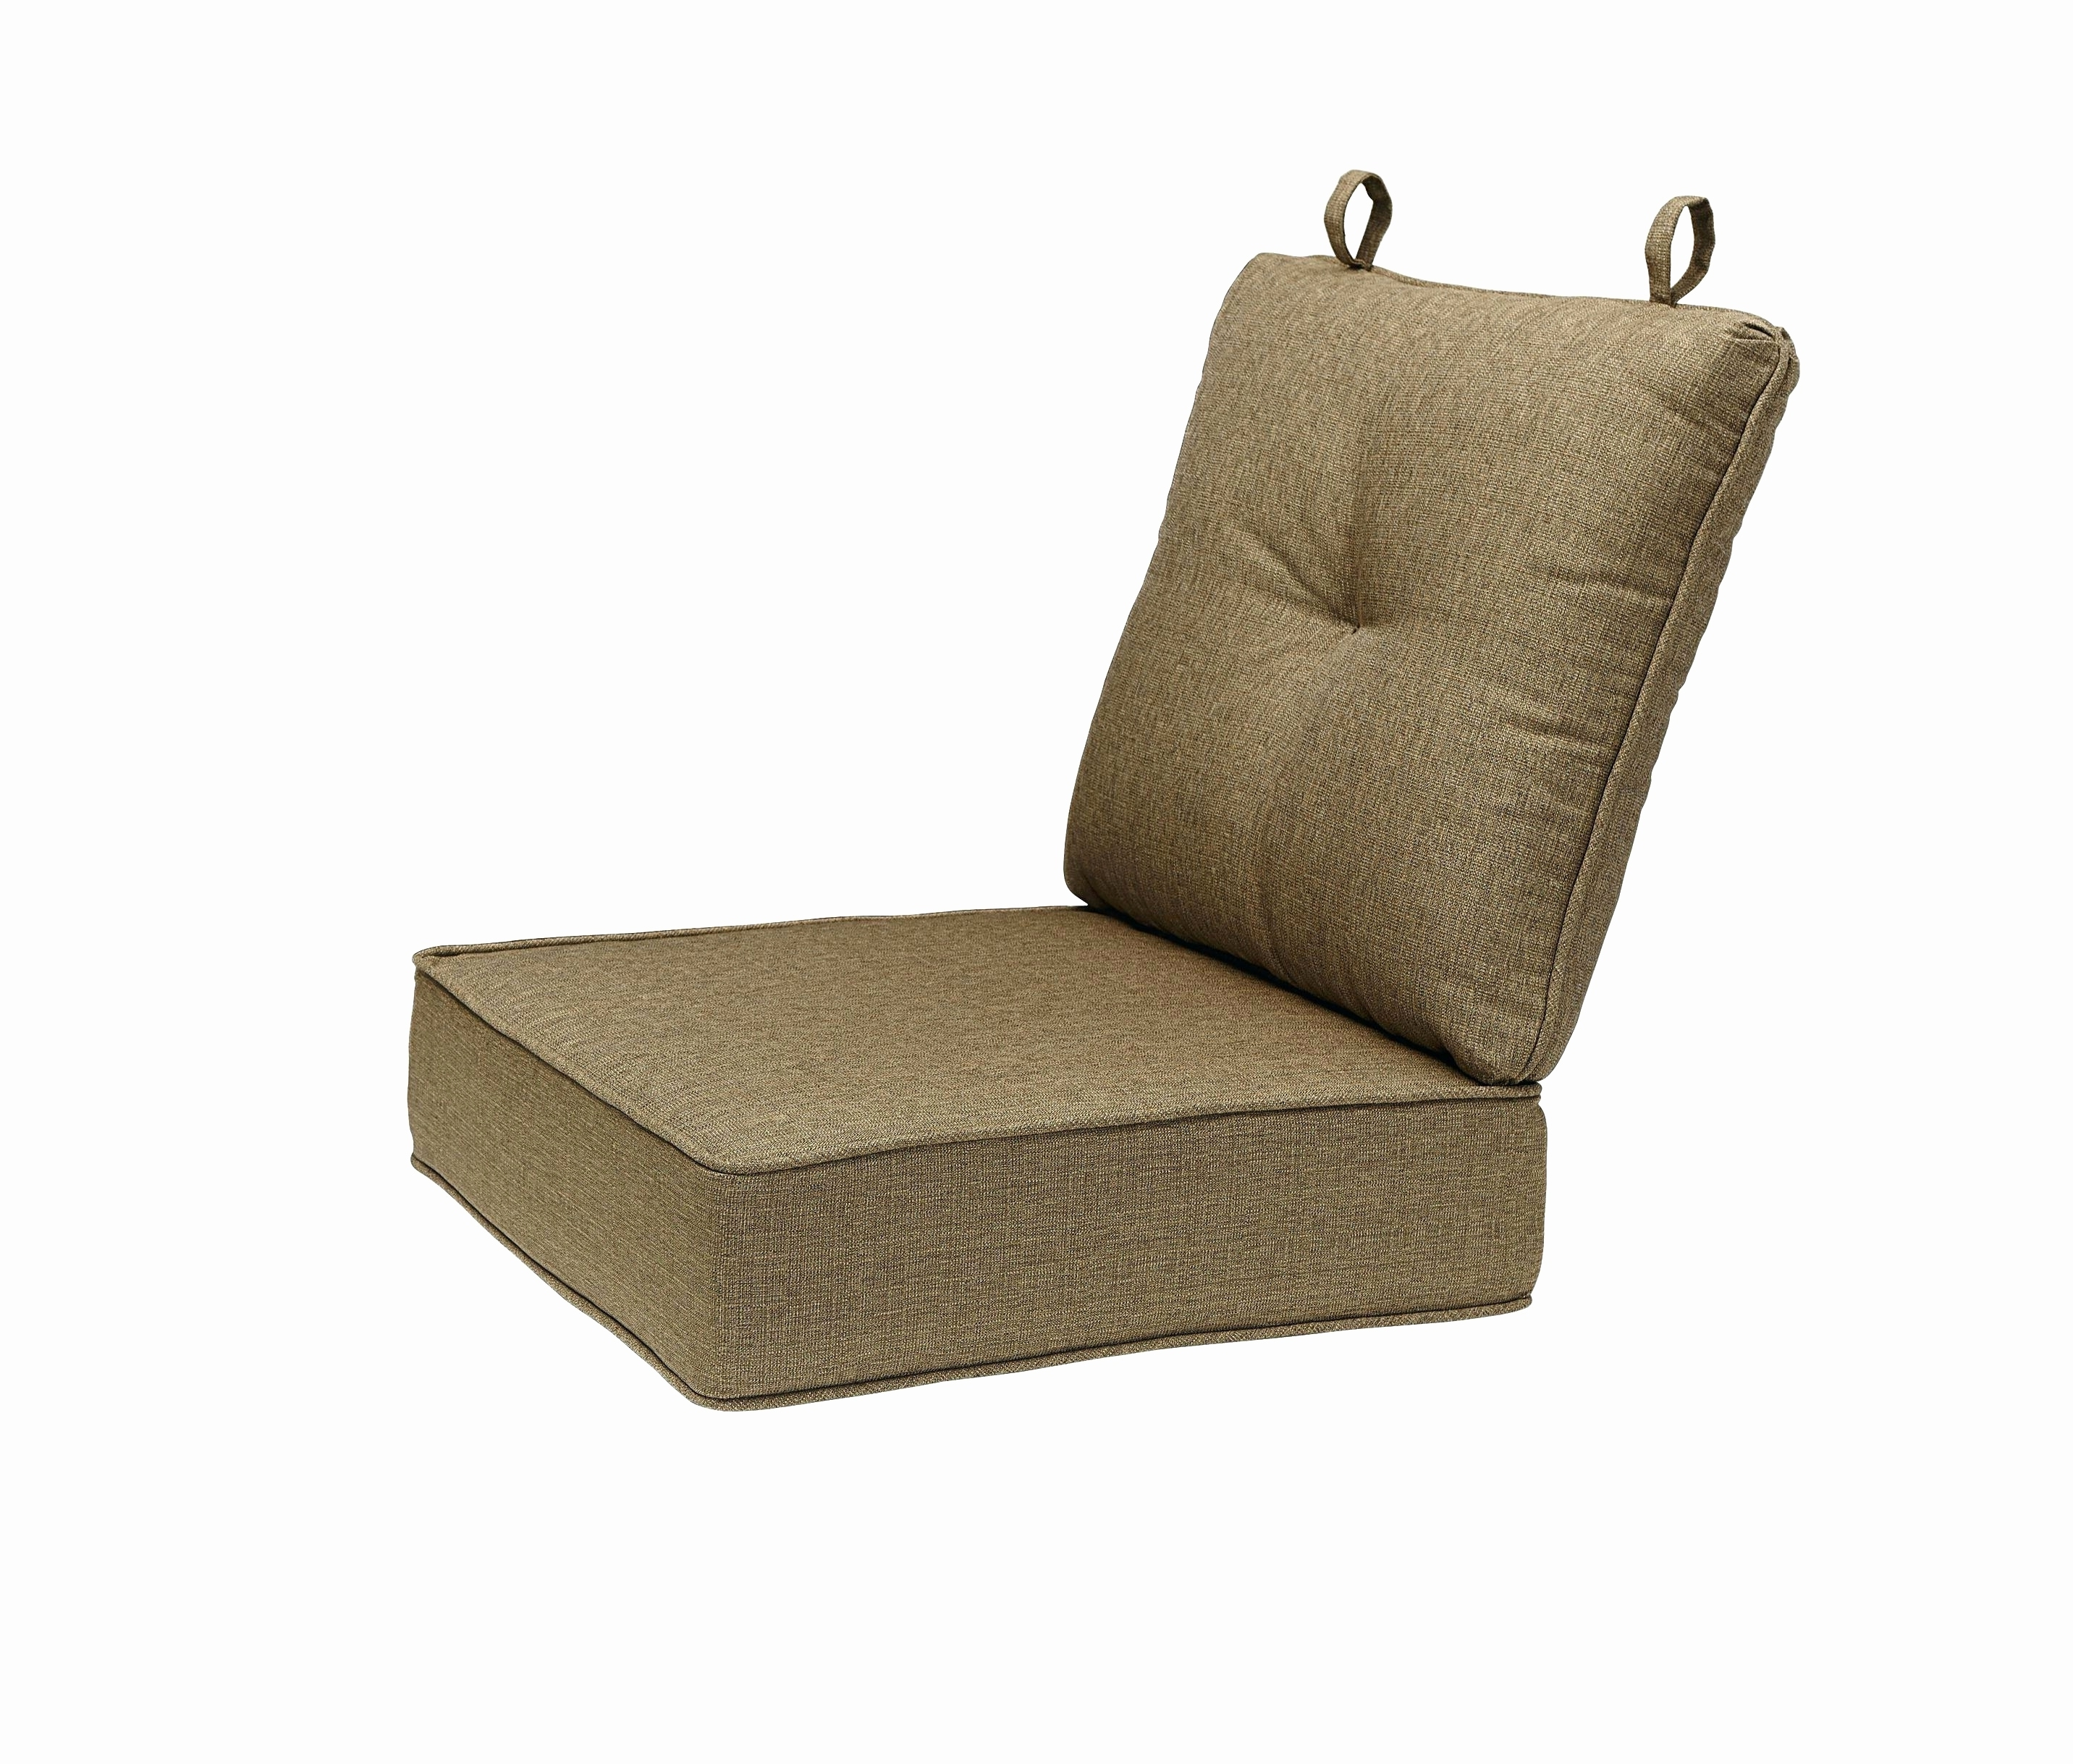 Home With Regard To Trendy Chaise Lounge Chairs At Big Lots (View 4 of 15)